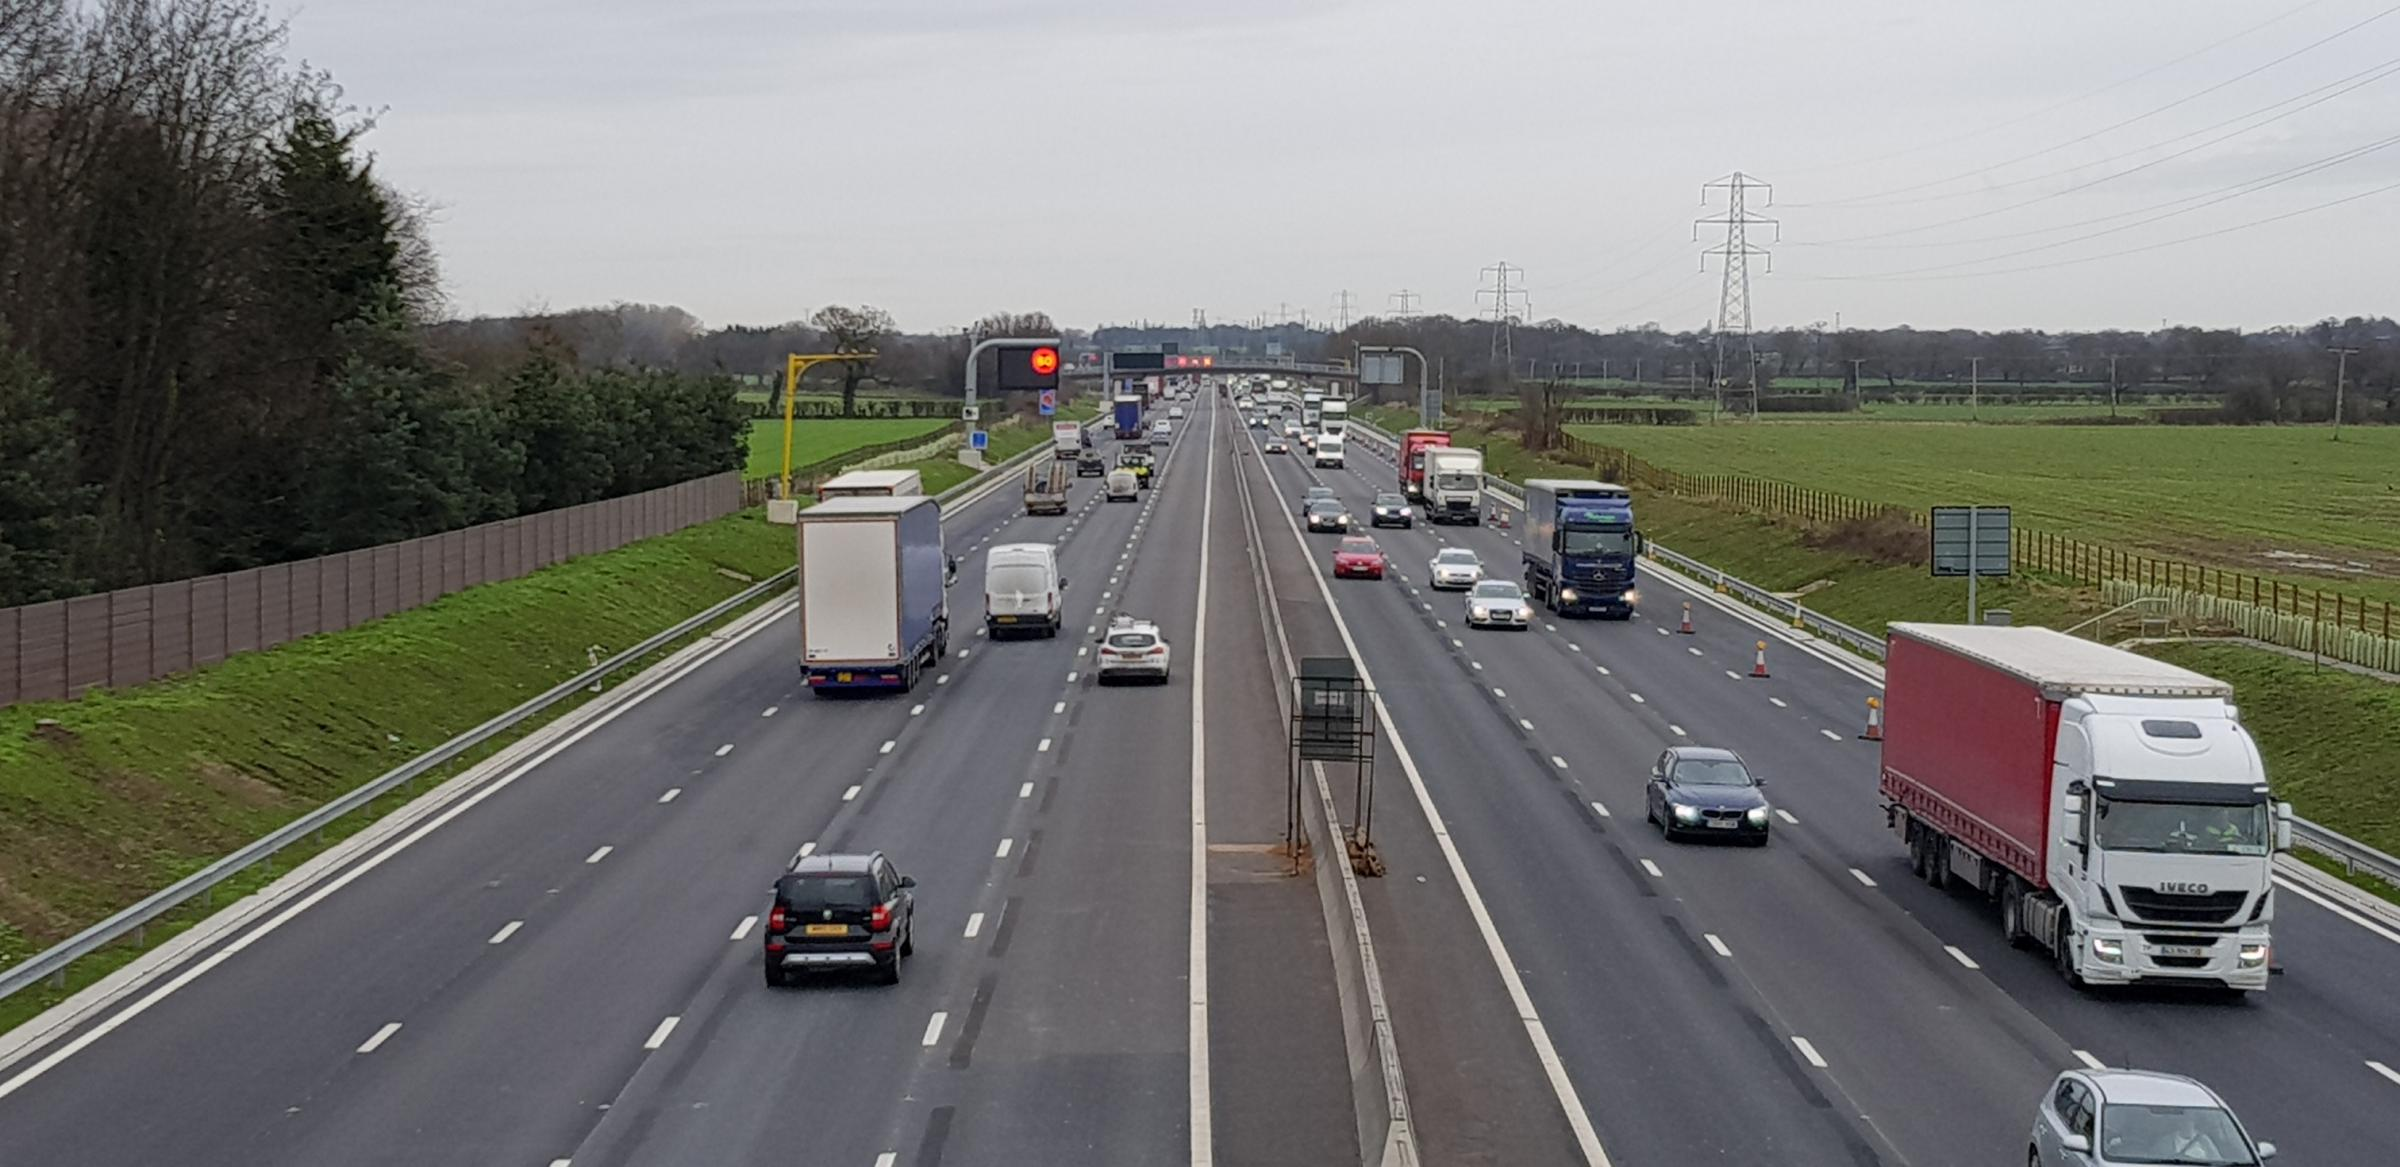 Extra lanes of the M6 are open from today, Friday, following roadworks.